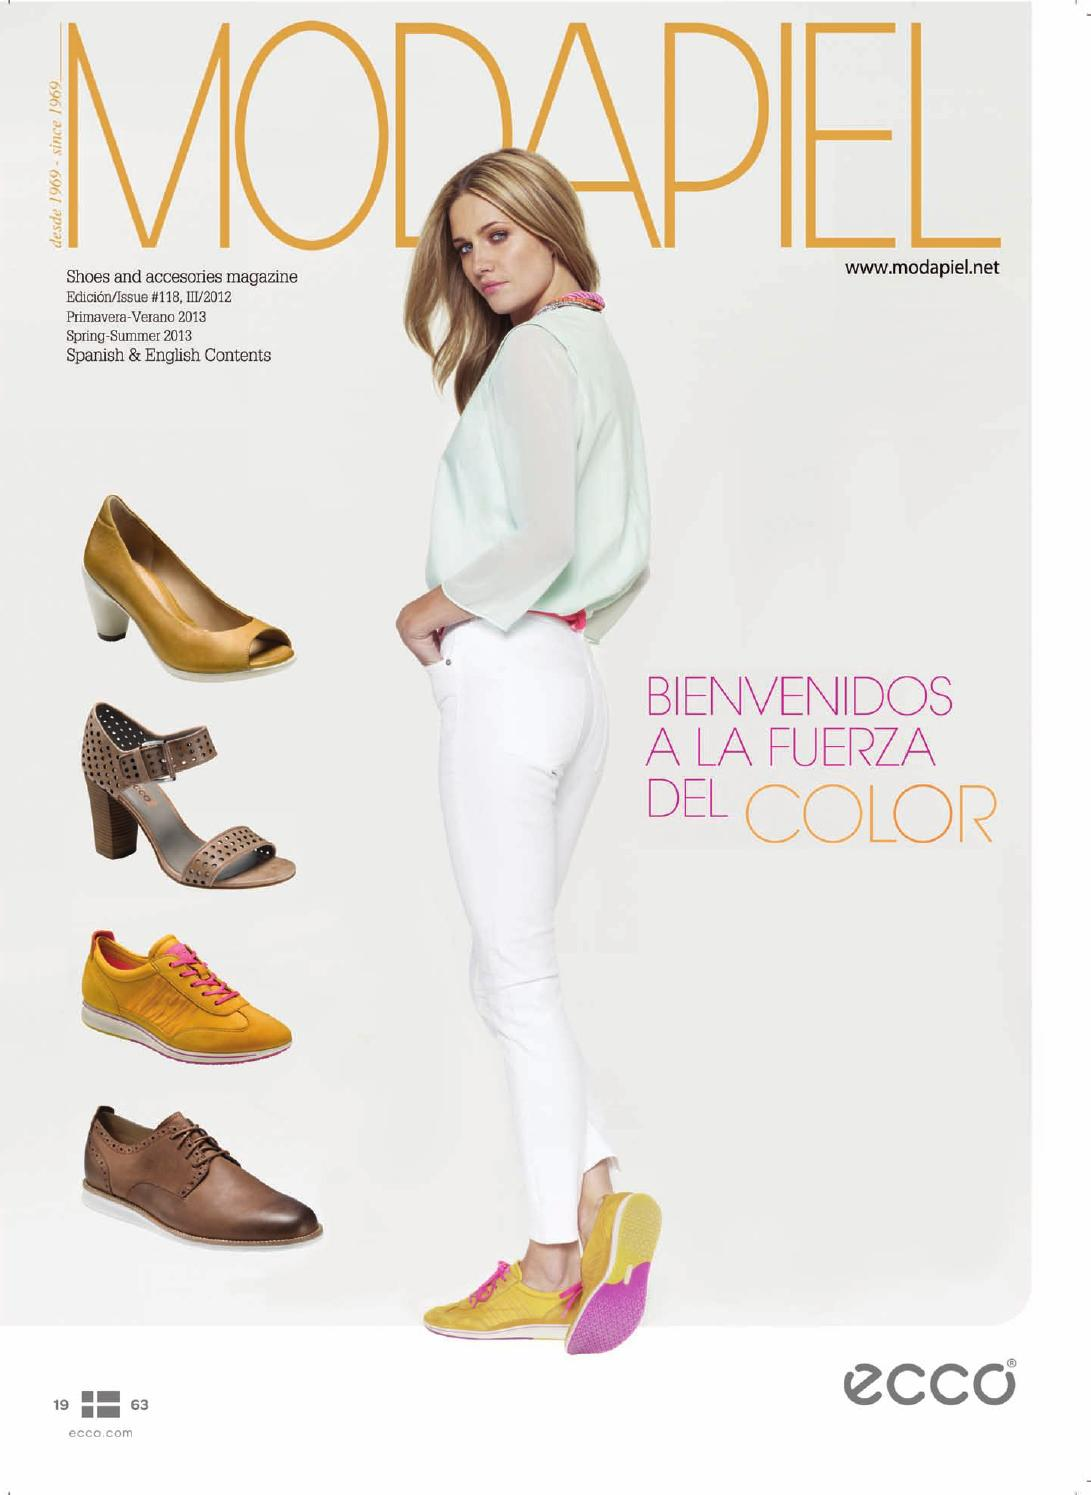 5978d7f9d64ee Modapiel 118 Shoes and accessories magazine by Prensa Técnica S.L. - issuu